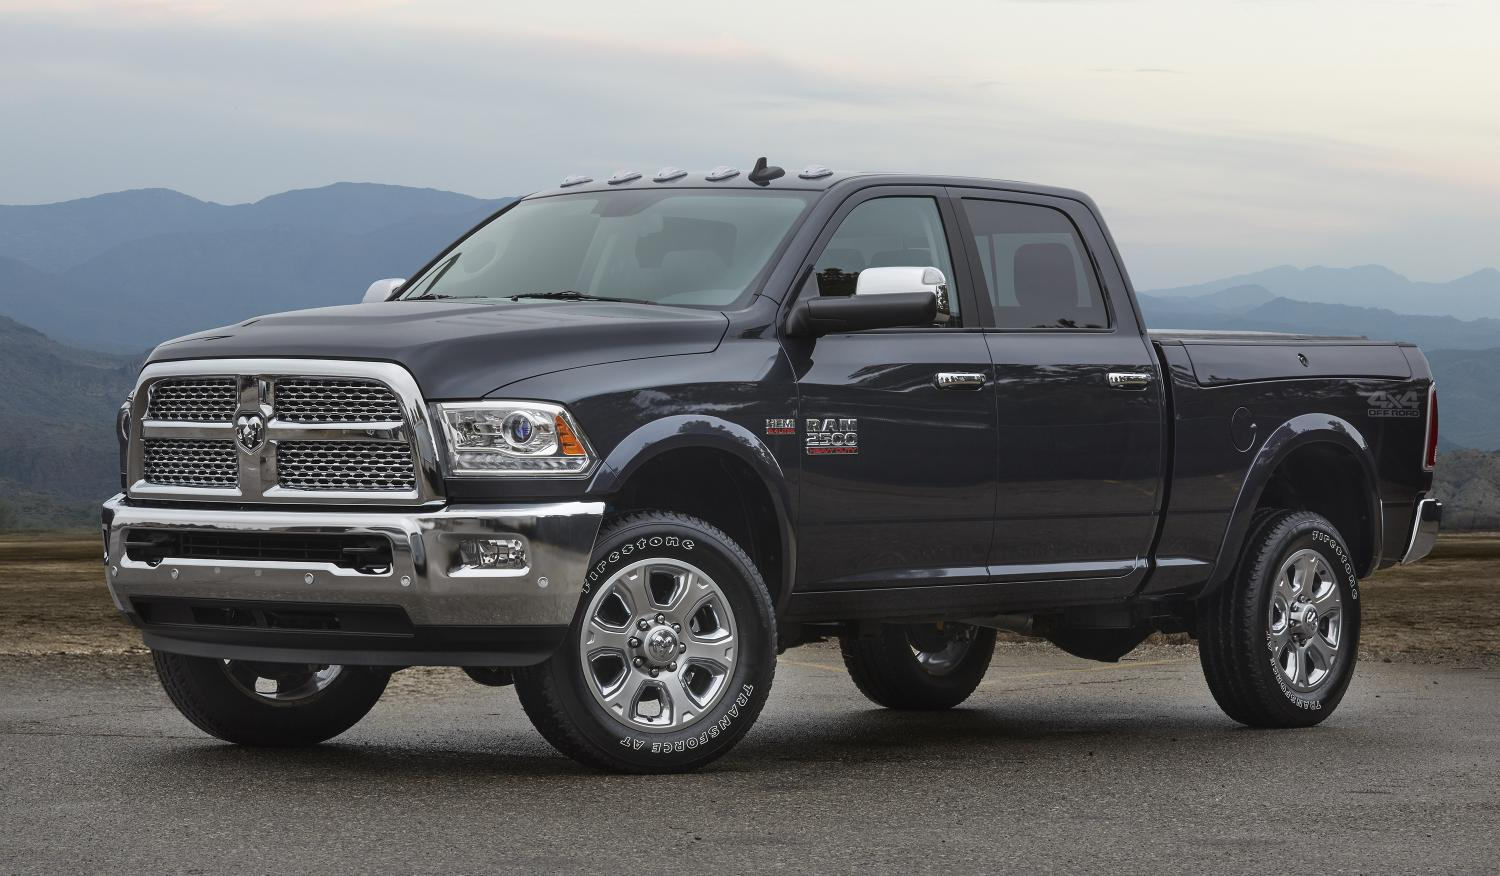 2016 ram 2500 4x4 off road package adds plenty of goodies for a small price autoevolution. Black Bedroom Furniture Sets. Home Design Ideas